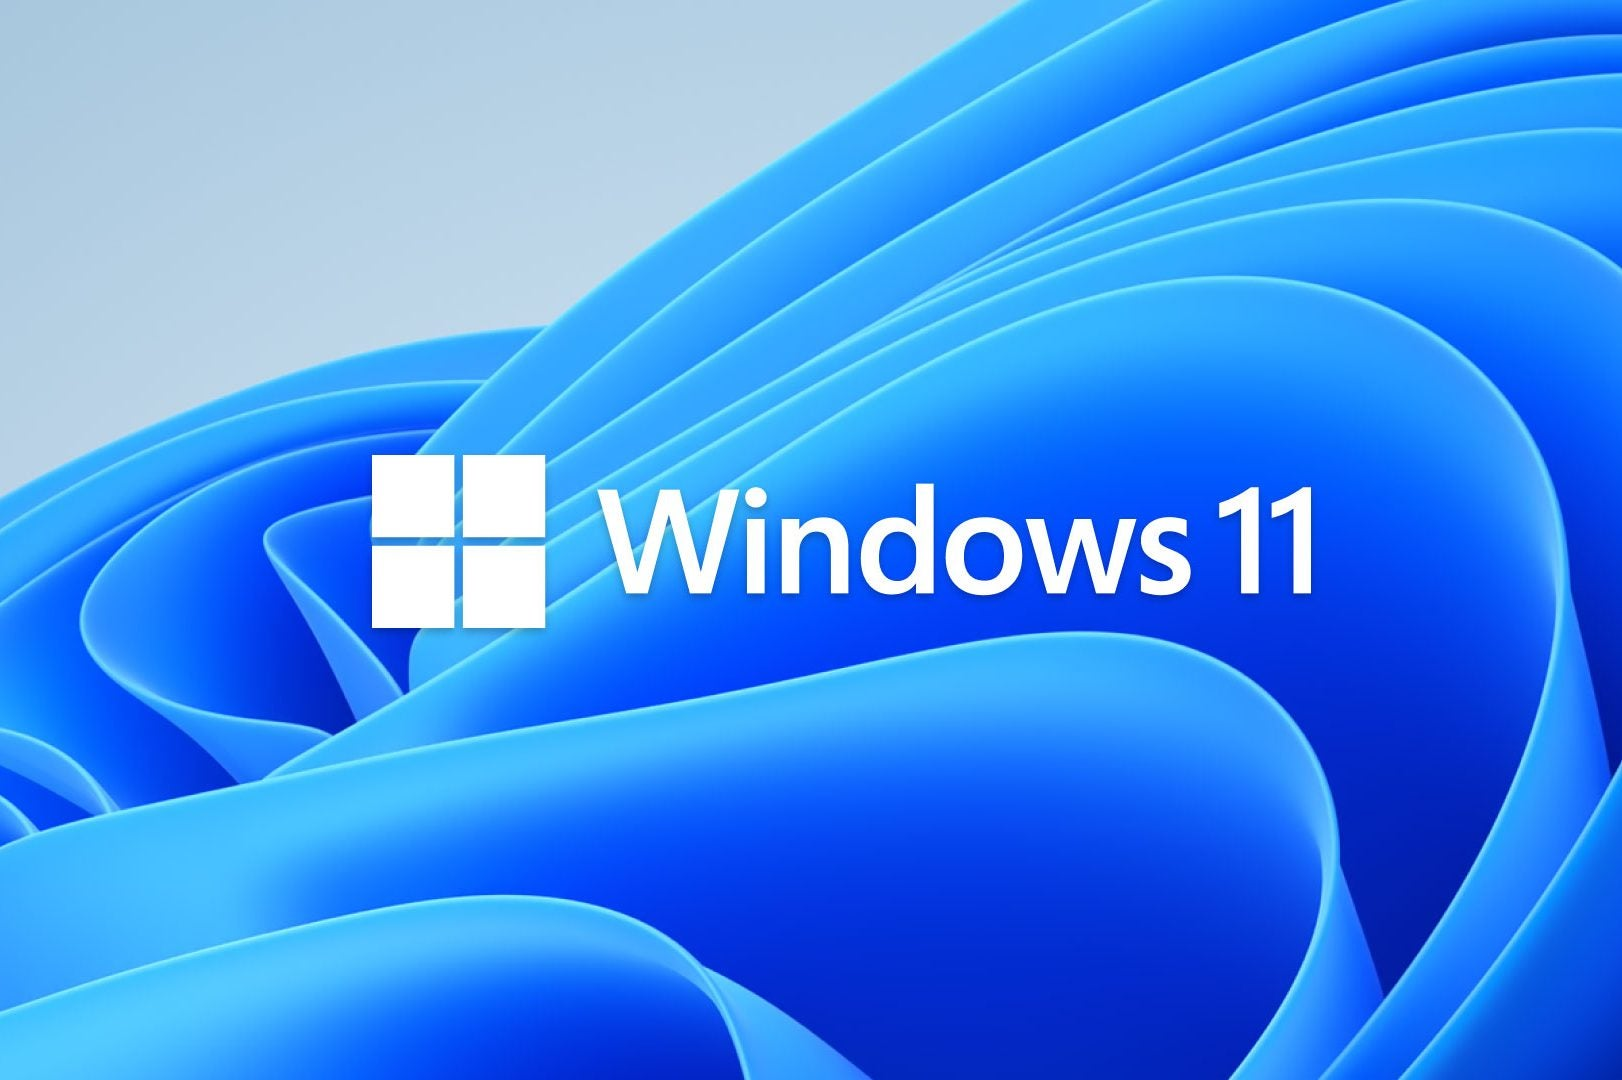 Are you ready for Windows 11 upgrade?